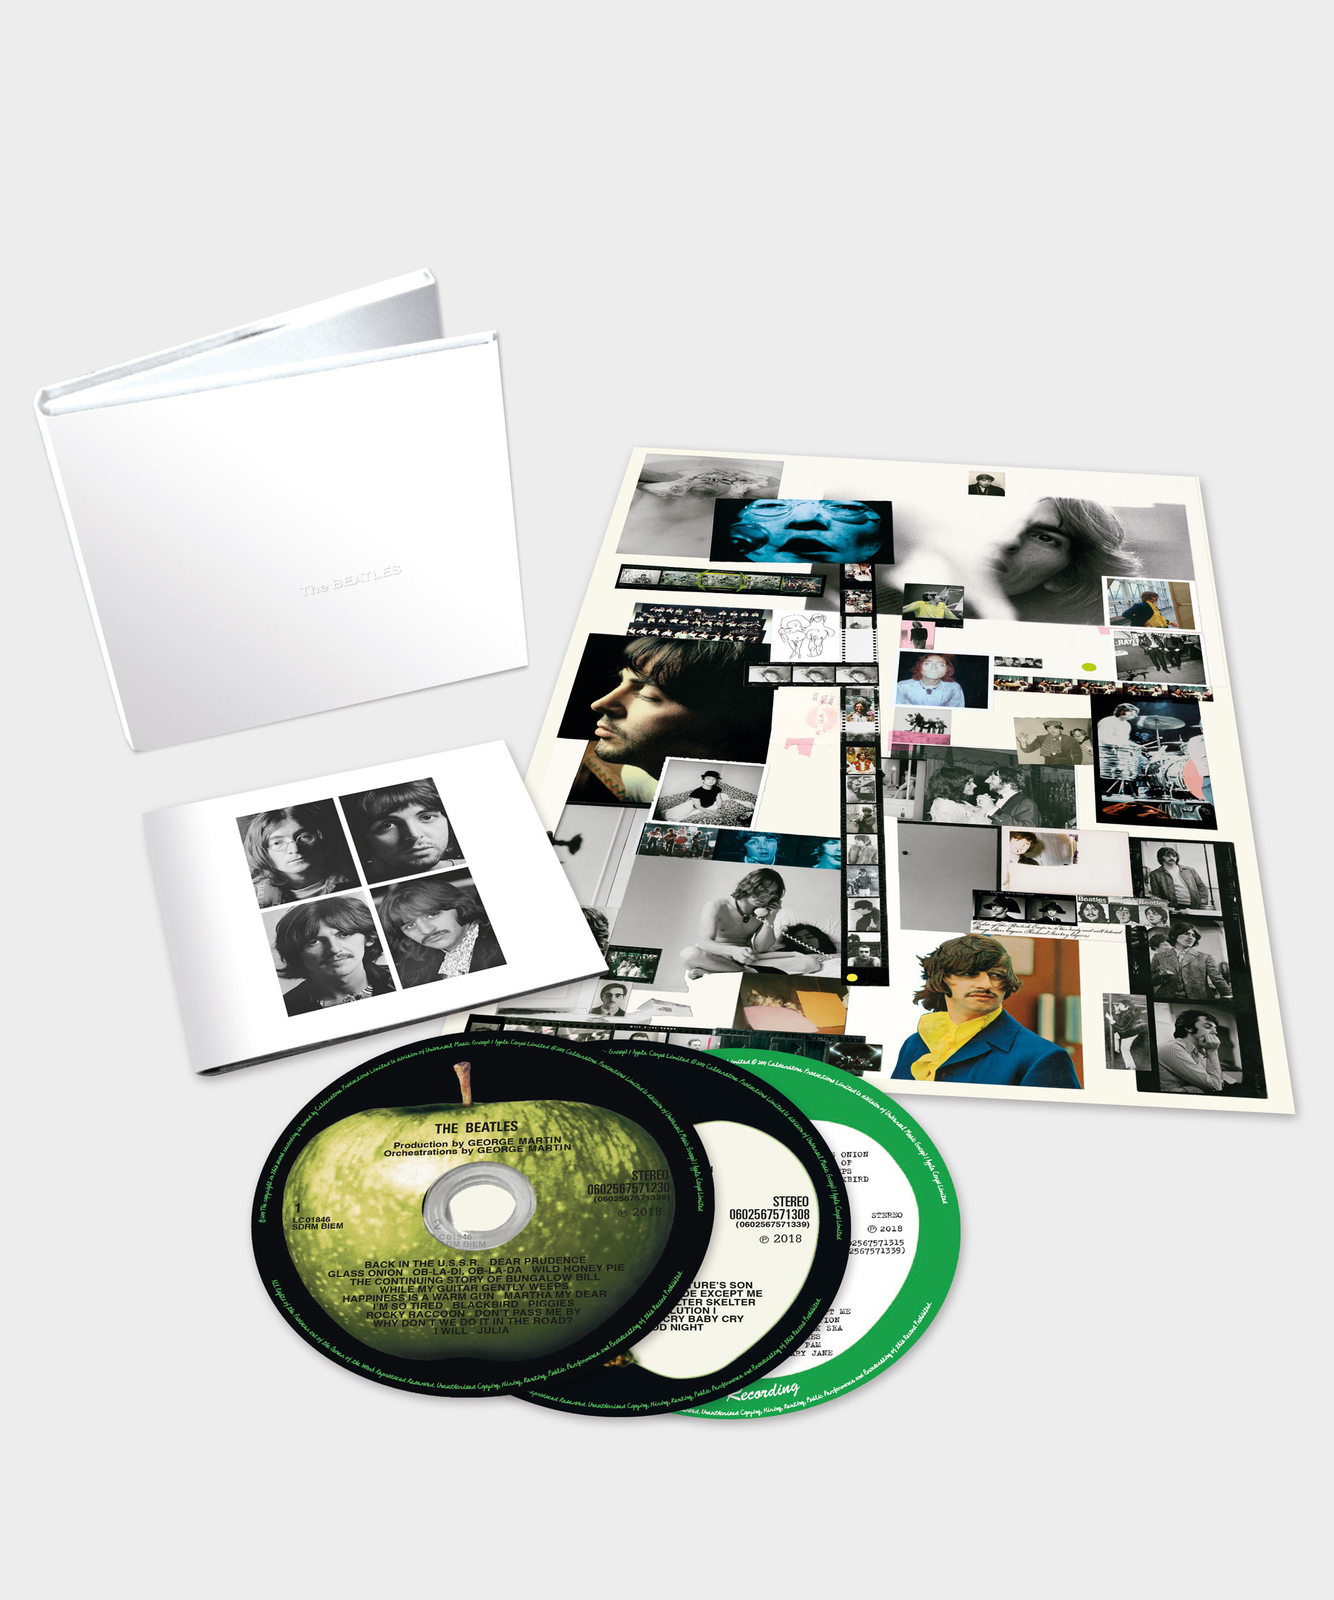 The Beatles (The White Album) 3CD by The Beatles image